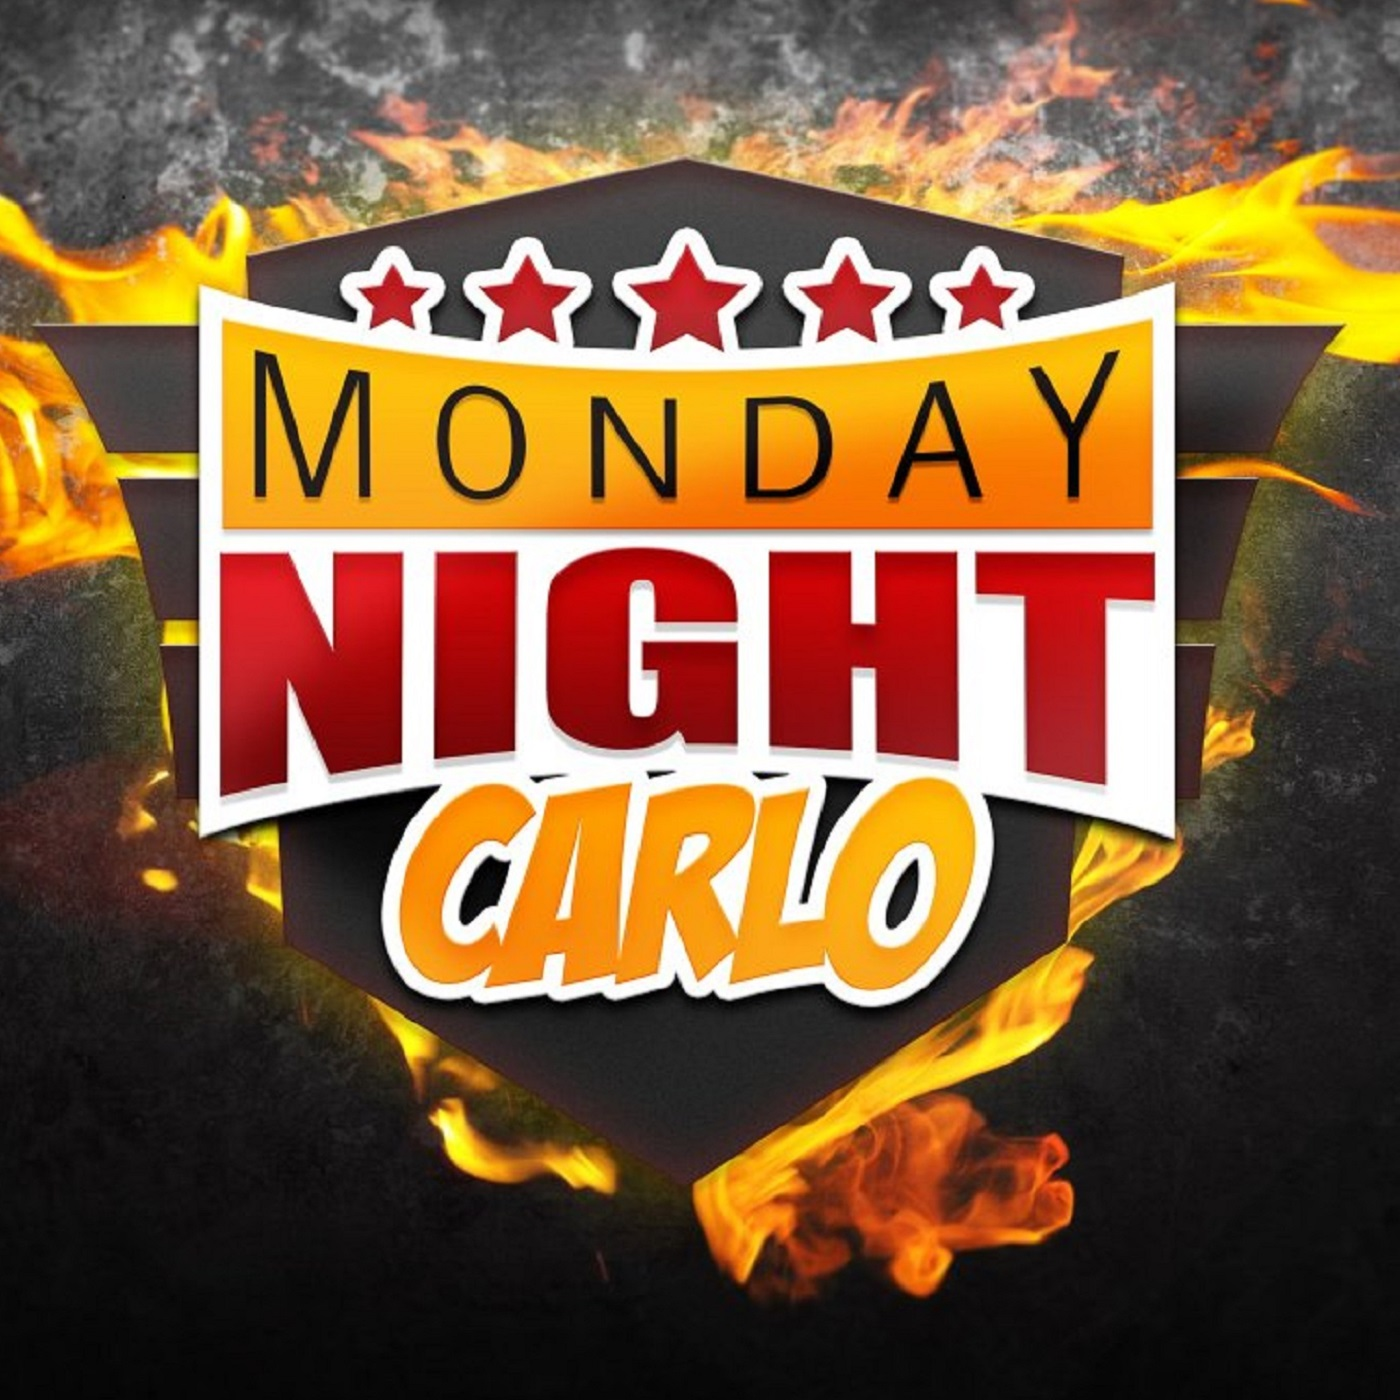 Monday Night Carlo™